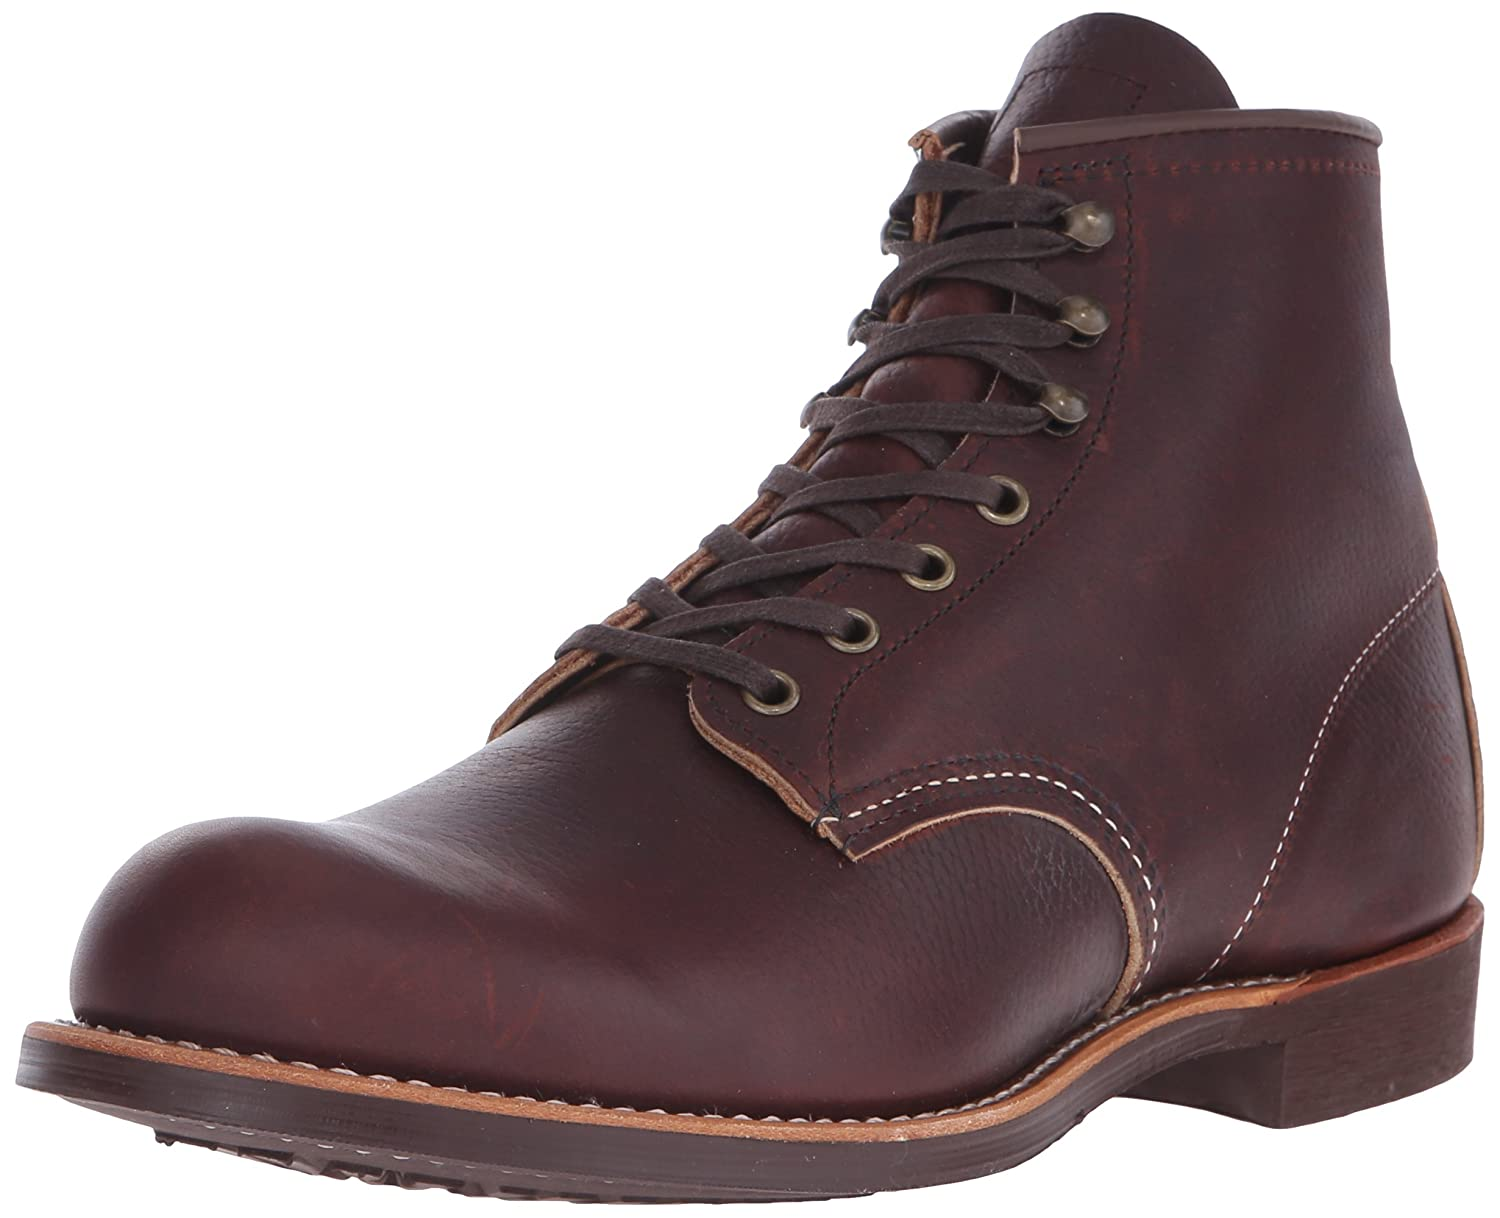 Red Wing Heritage メンズ Red Wing Heritage Briar Oil Slick Leather 11.5 D(M) US 11.5 D(M) USBriar Oil Slick Leather B018TL4MM8